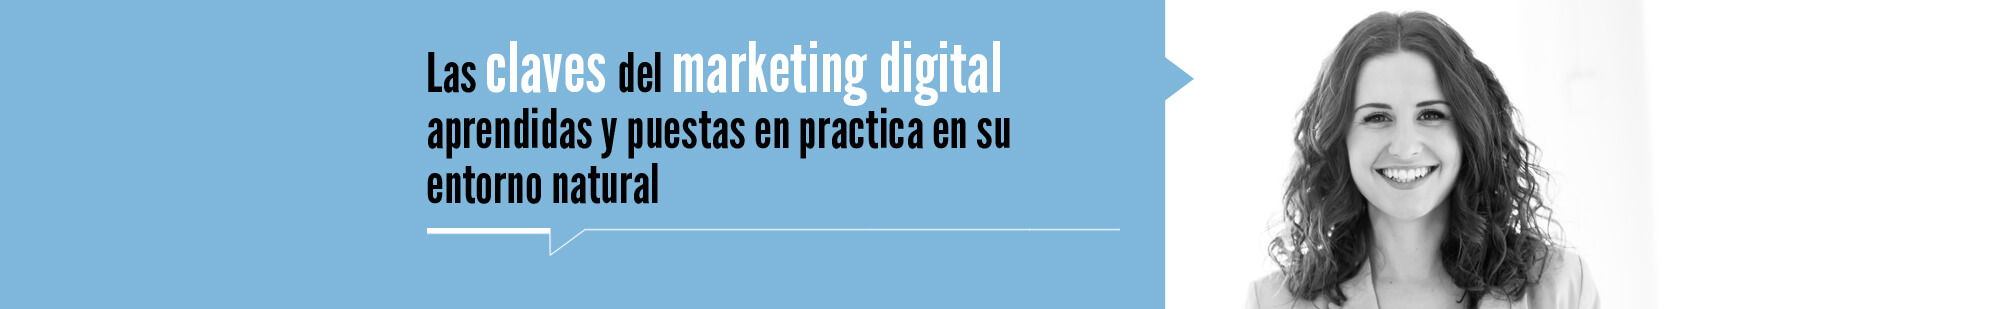 Máster Online de Marketing Digital